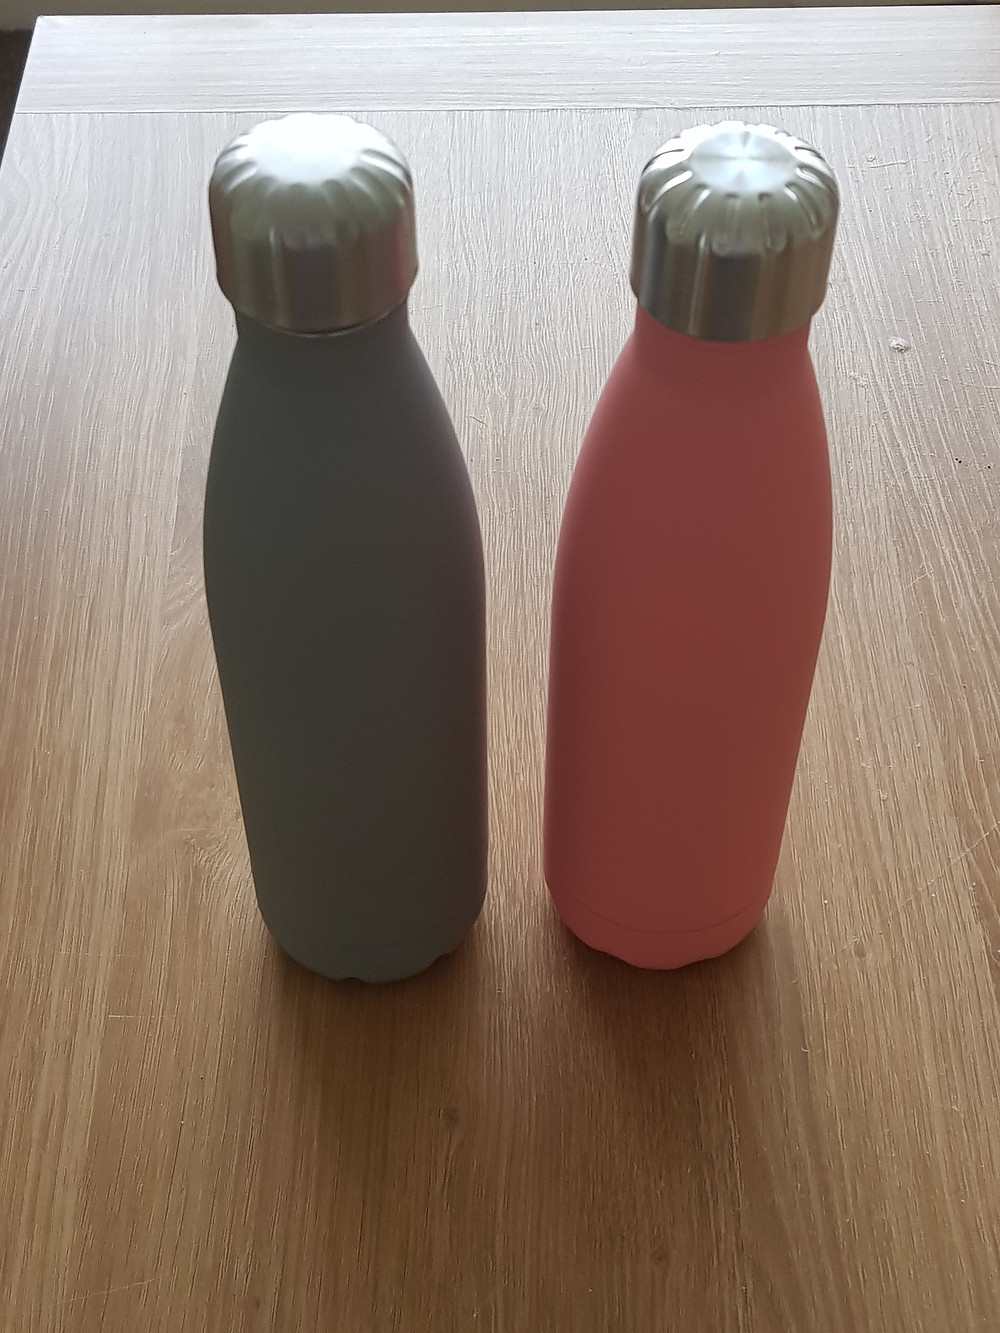 Re-usable water bottles to reduce plastic waste